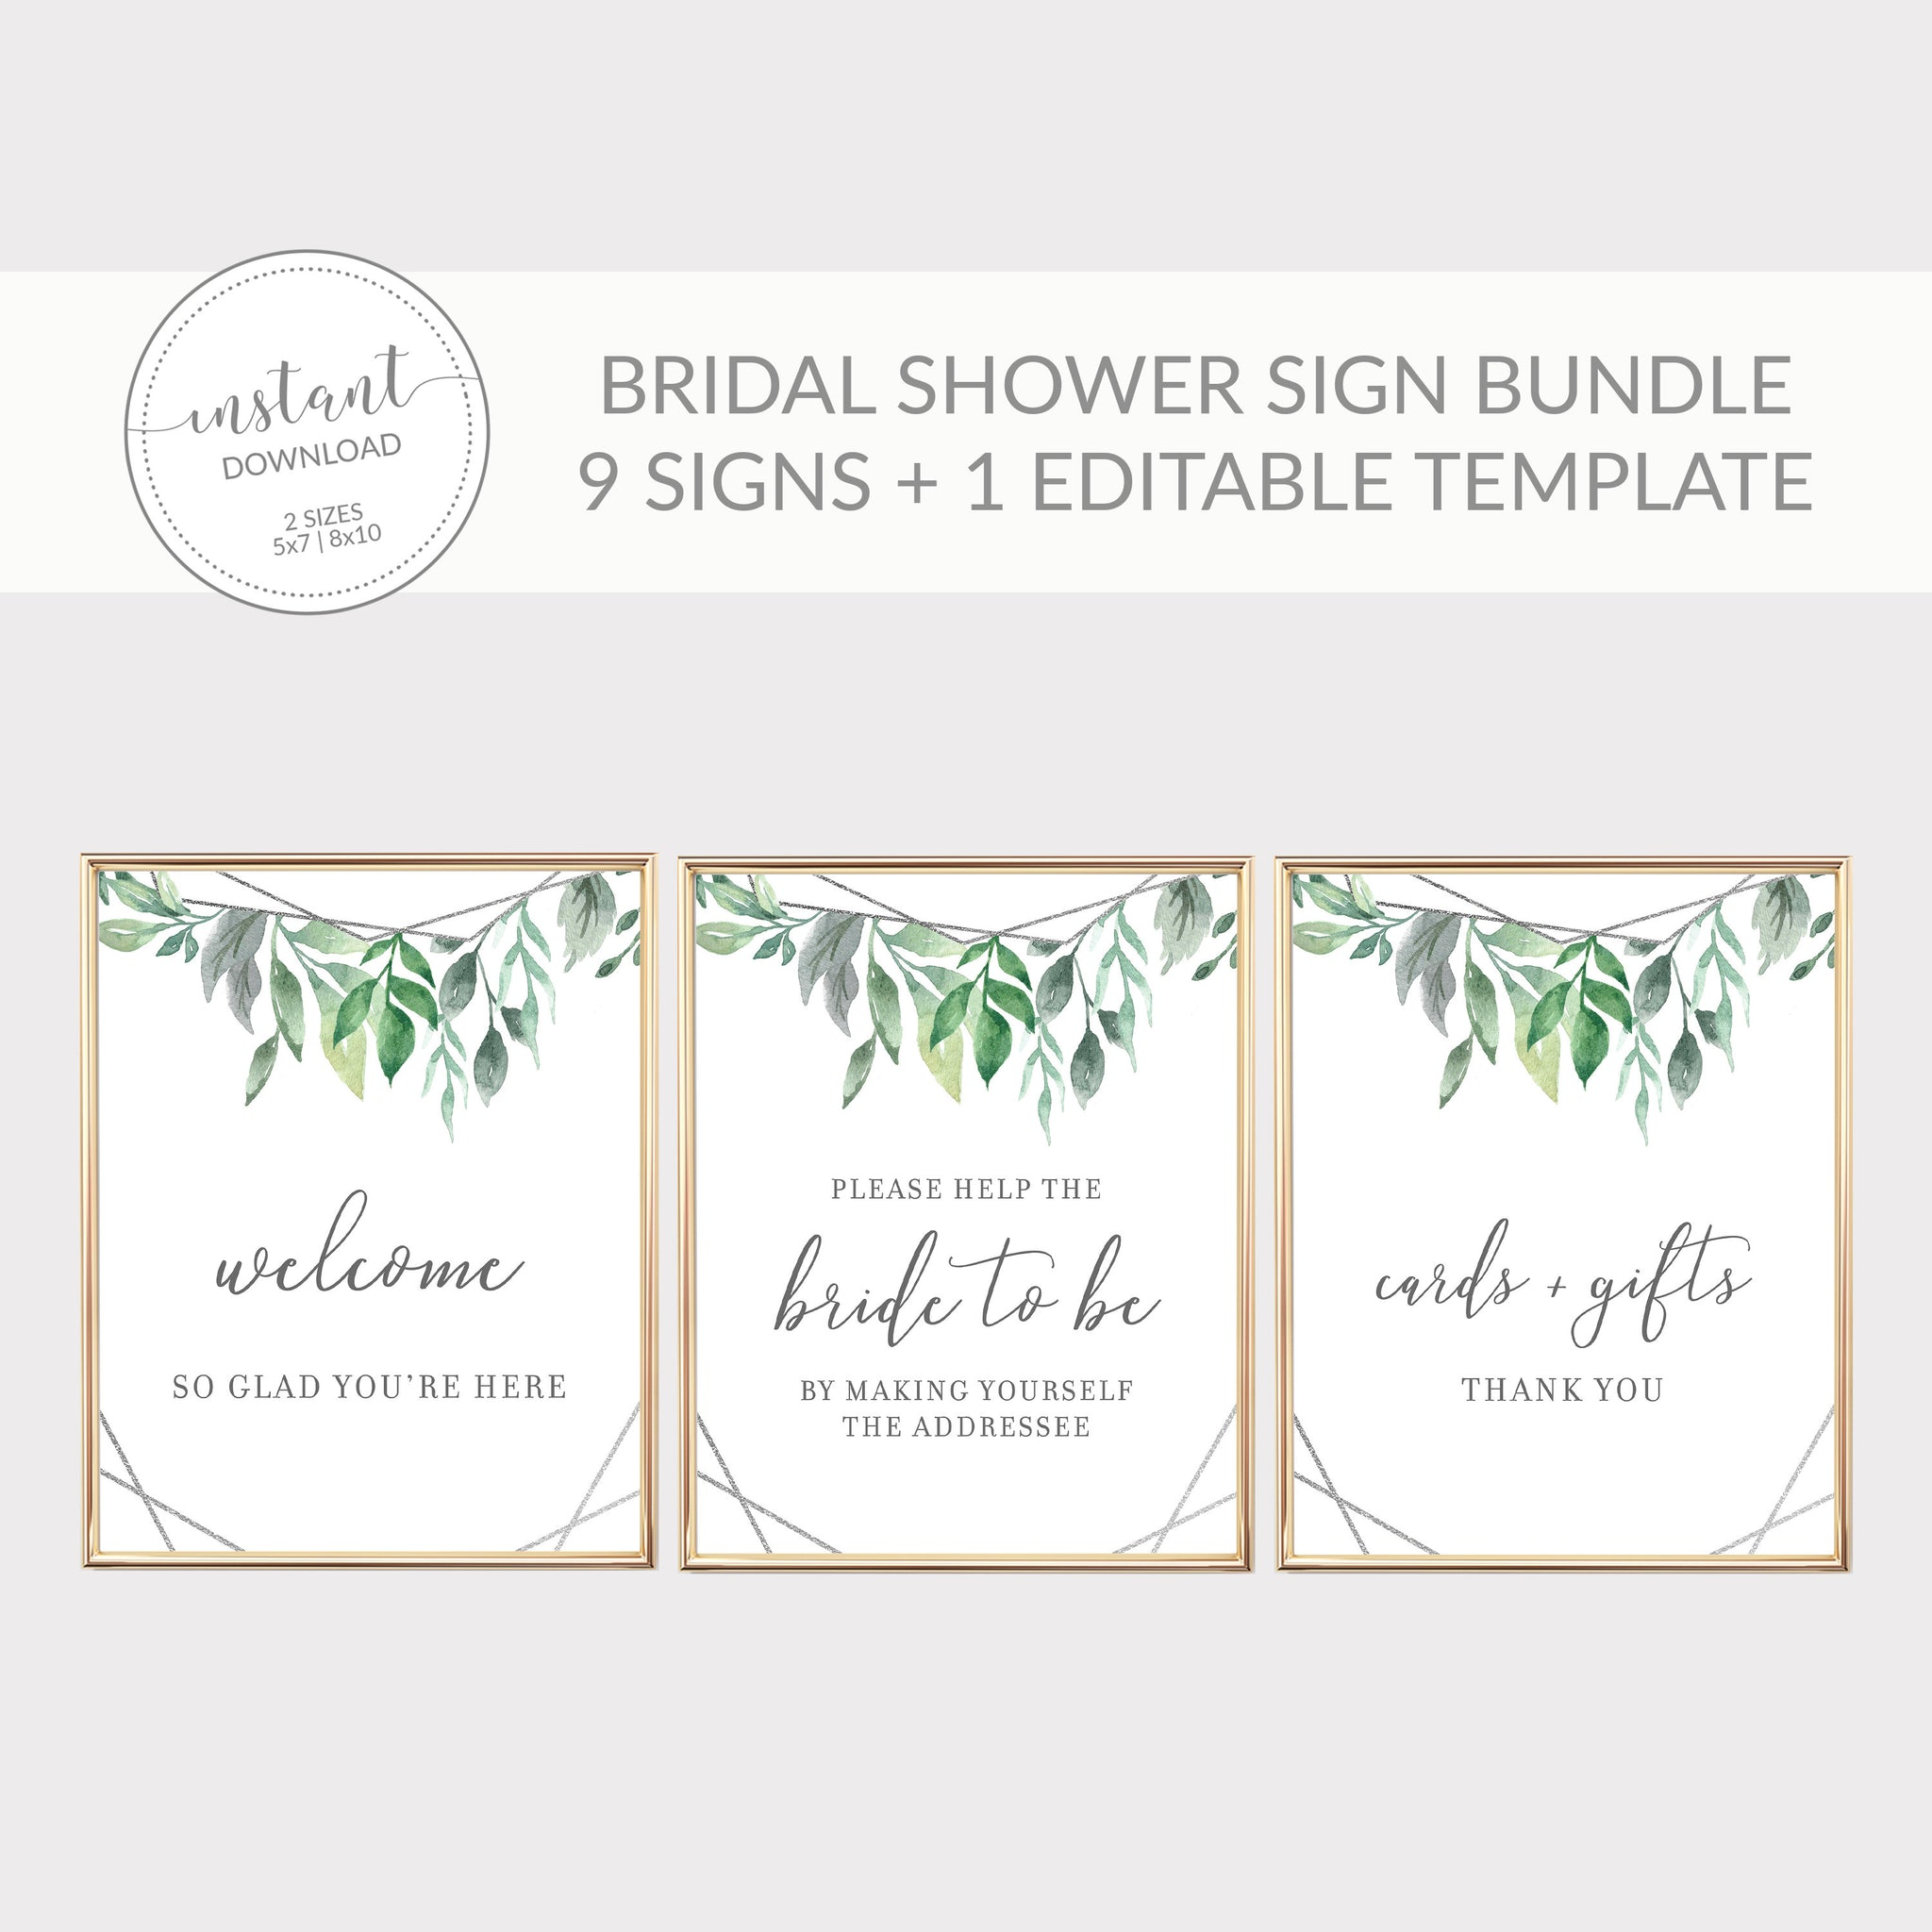 Geometric Silver Greenery Printable Bridal Shower Sign Bundle, INSTANT DOWNLOAD, Editable Bridal Shower Sign, Decorations Supplies - GFS100